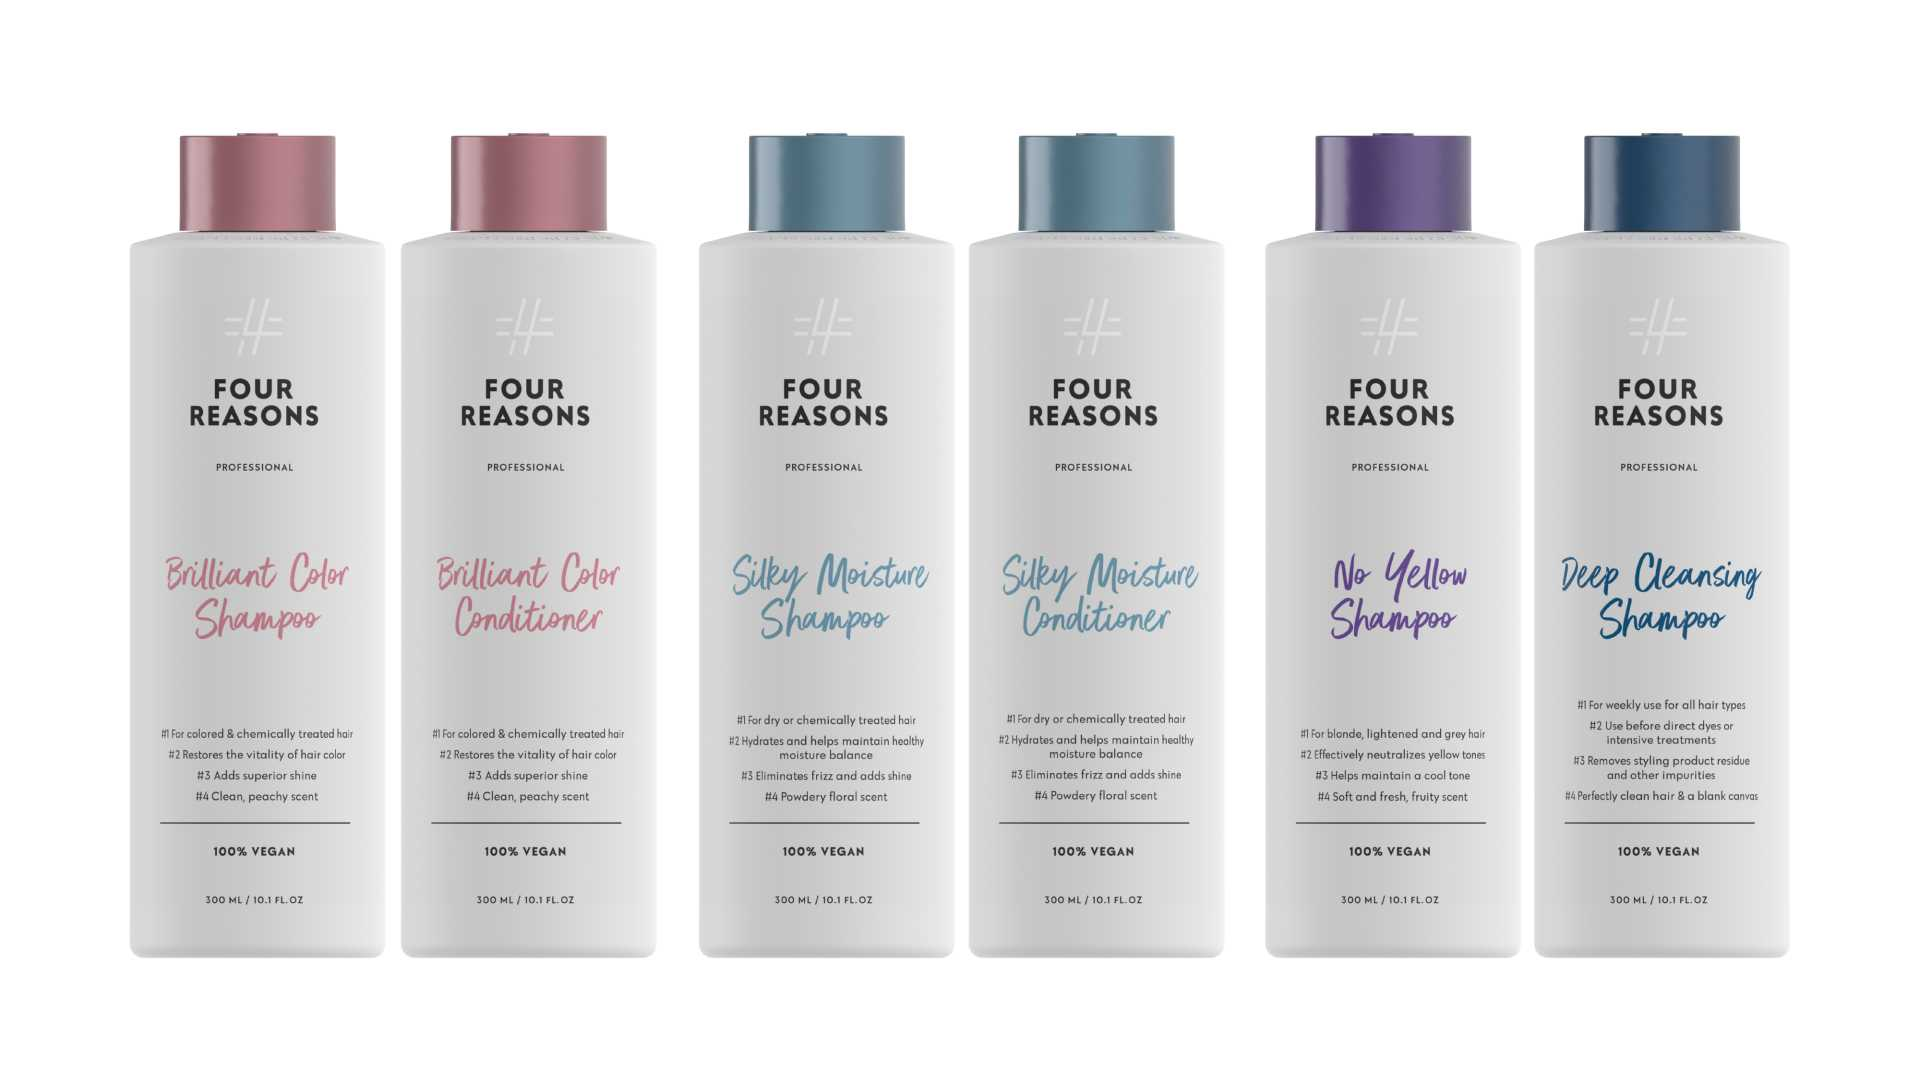 Four Reasons Professional Shampoos & Conditioners